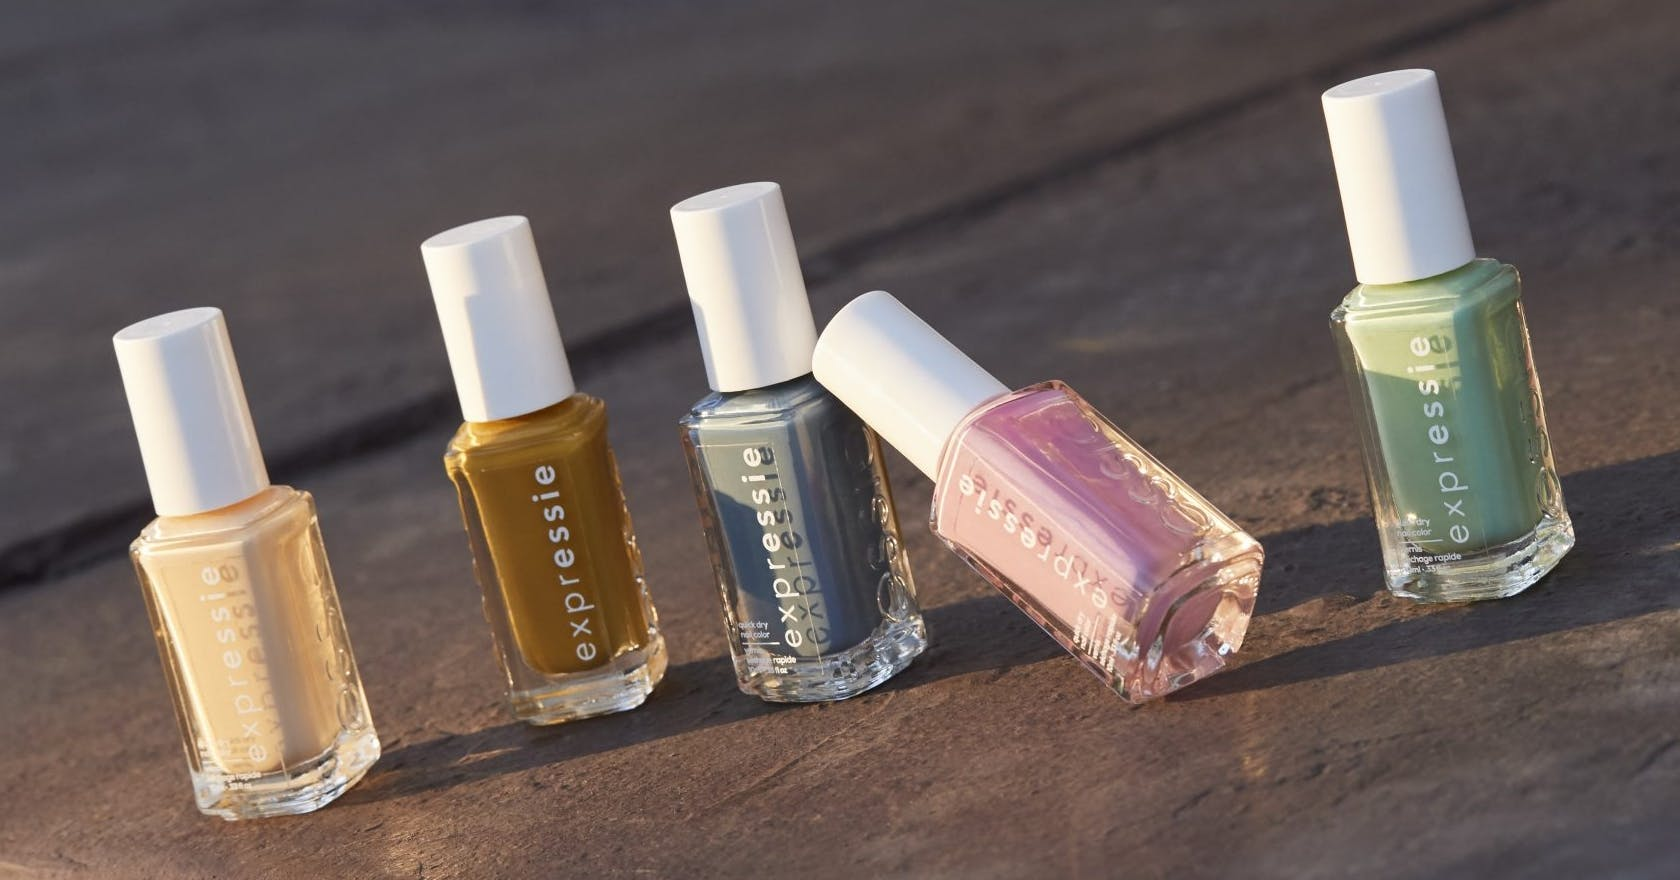 The nail polish giving your gel manicure a run for its money